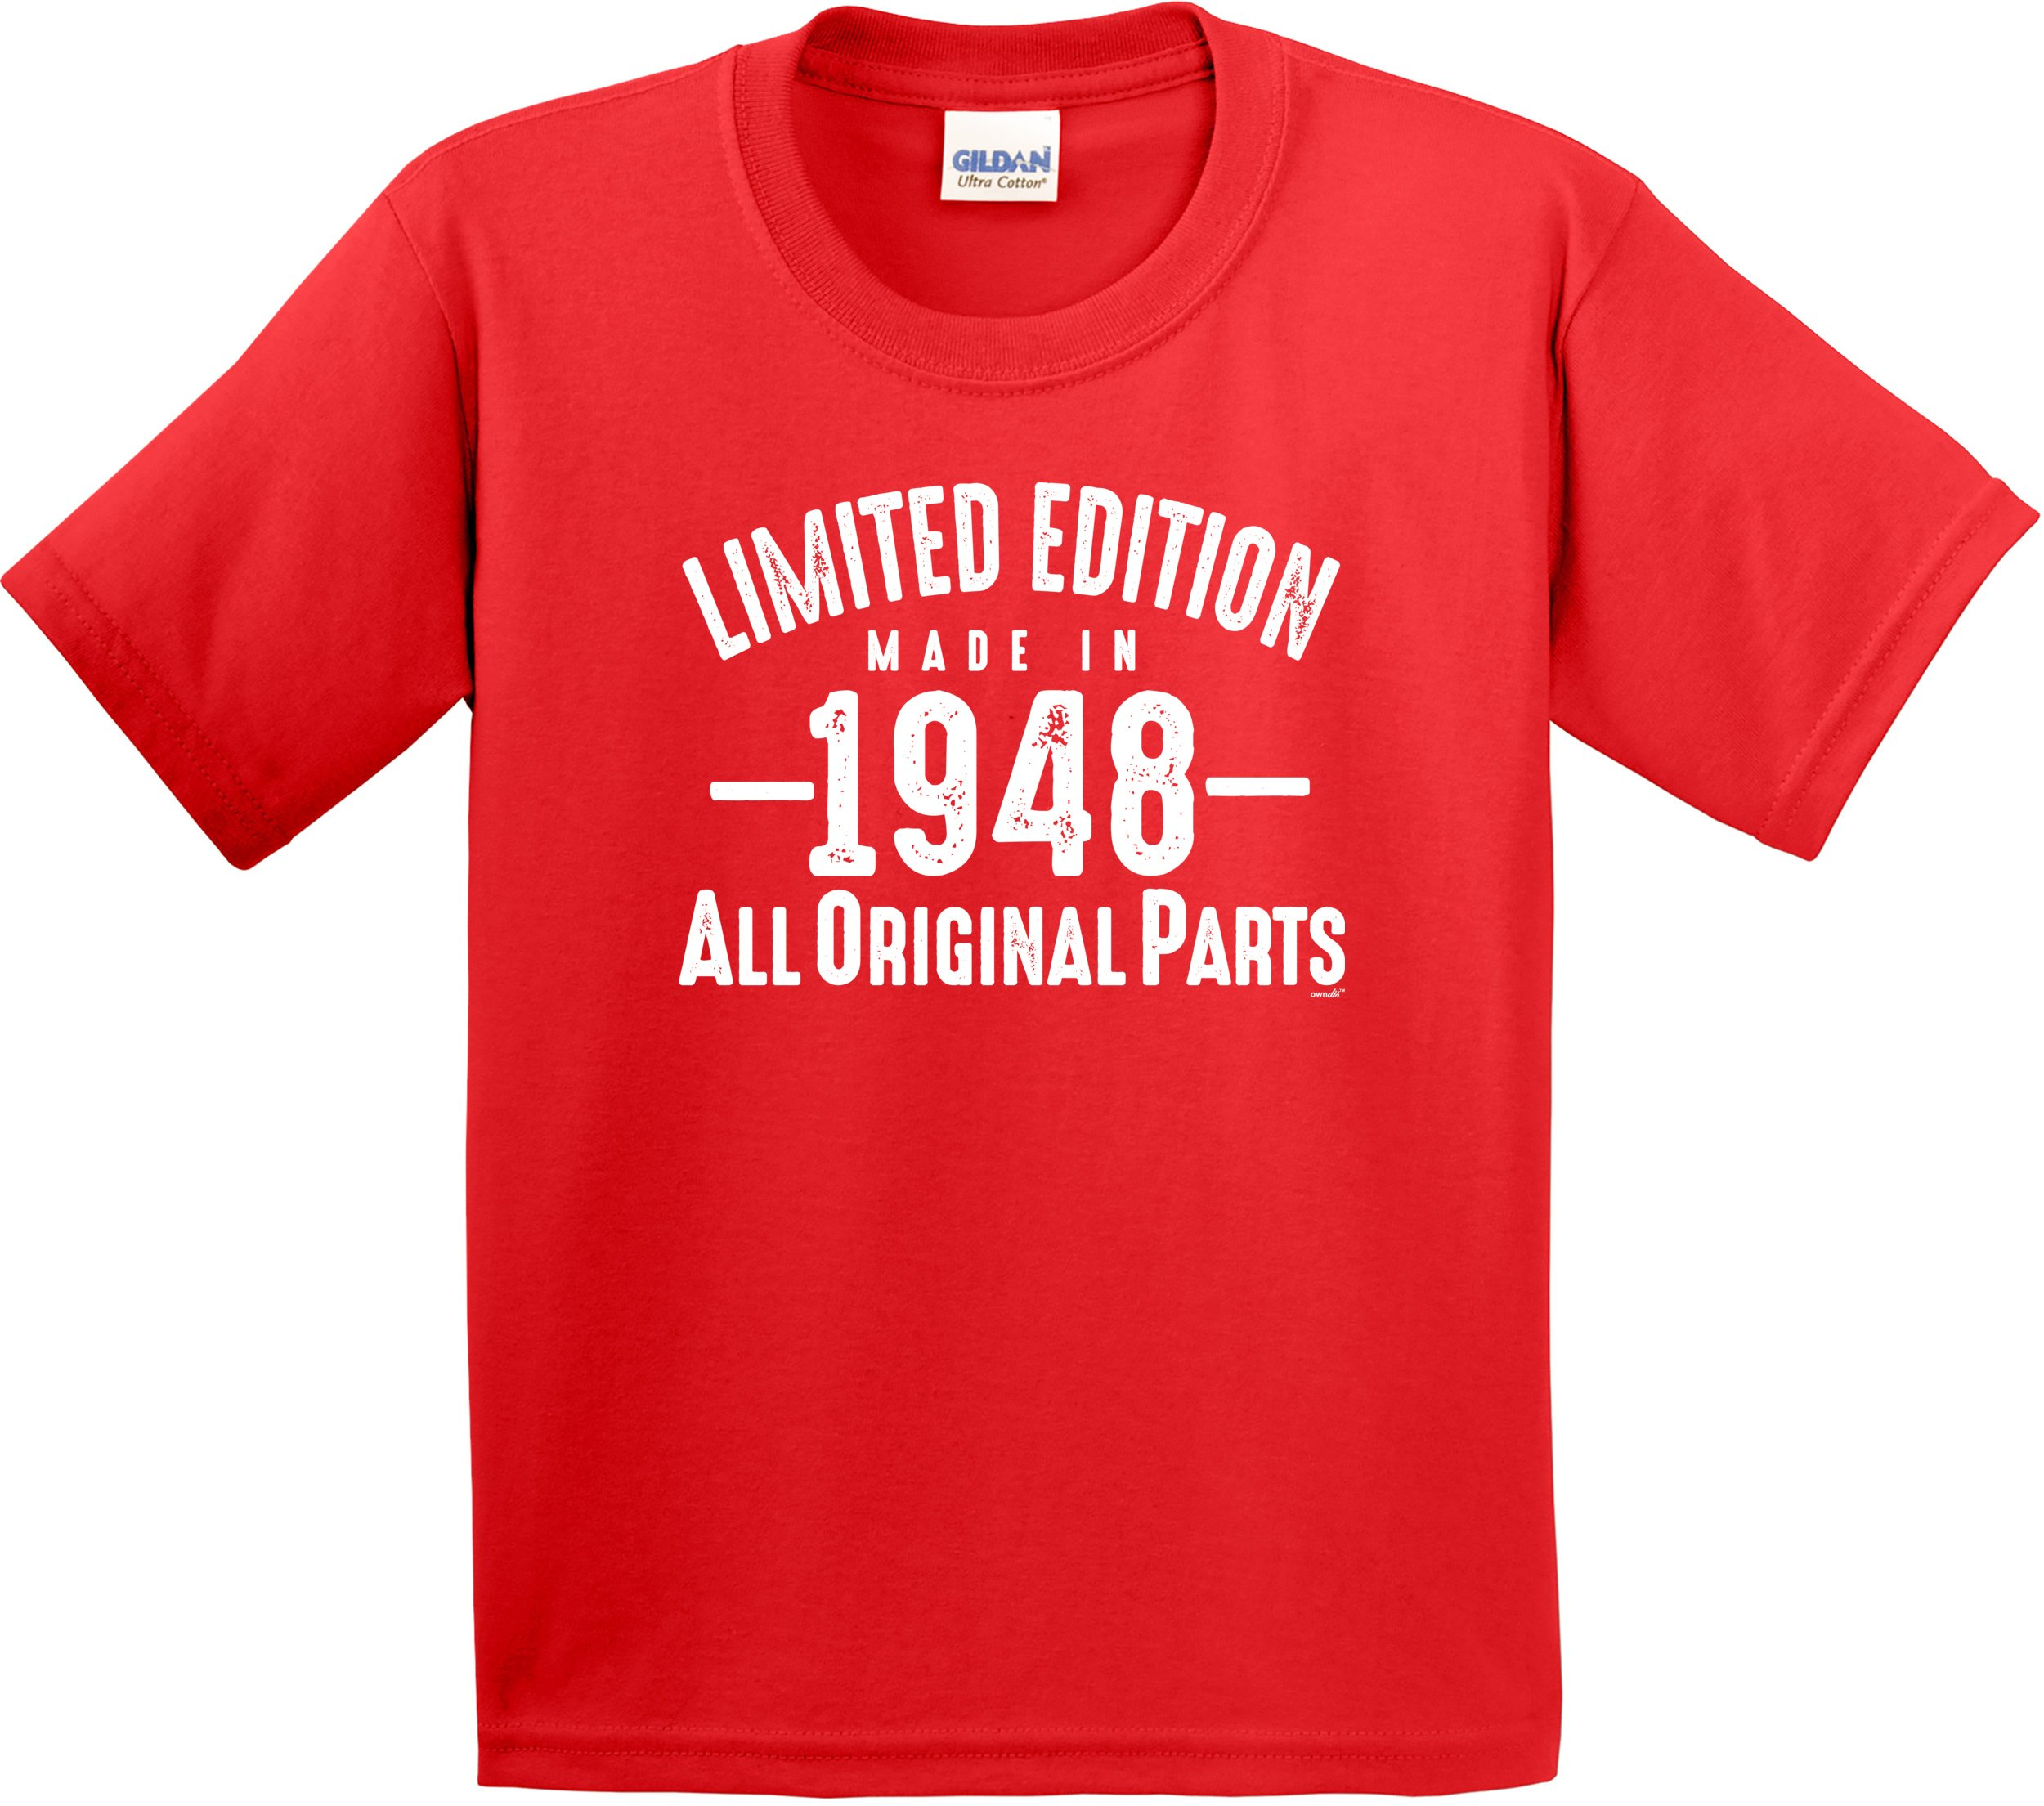 owndis Tee 70th Birthday Gifts Limited Edition Made In 1948 All Original Parts-1948-TEE-0070-L-Orange